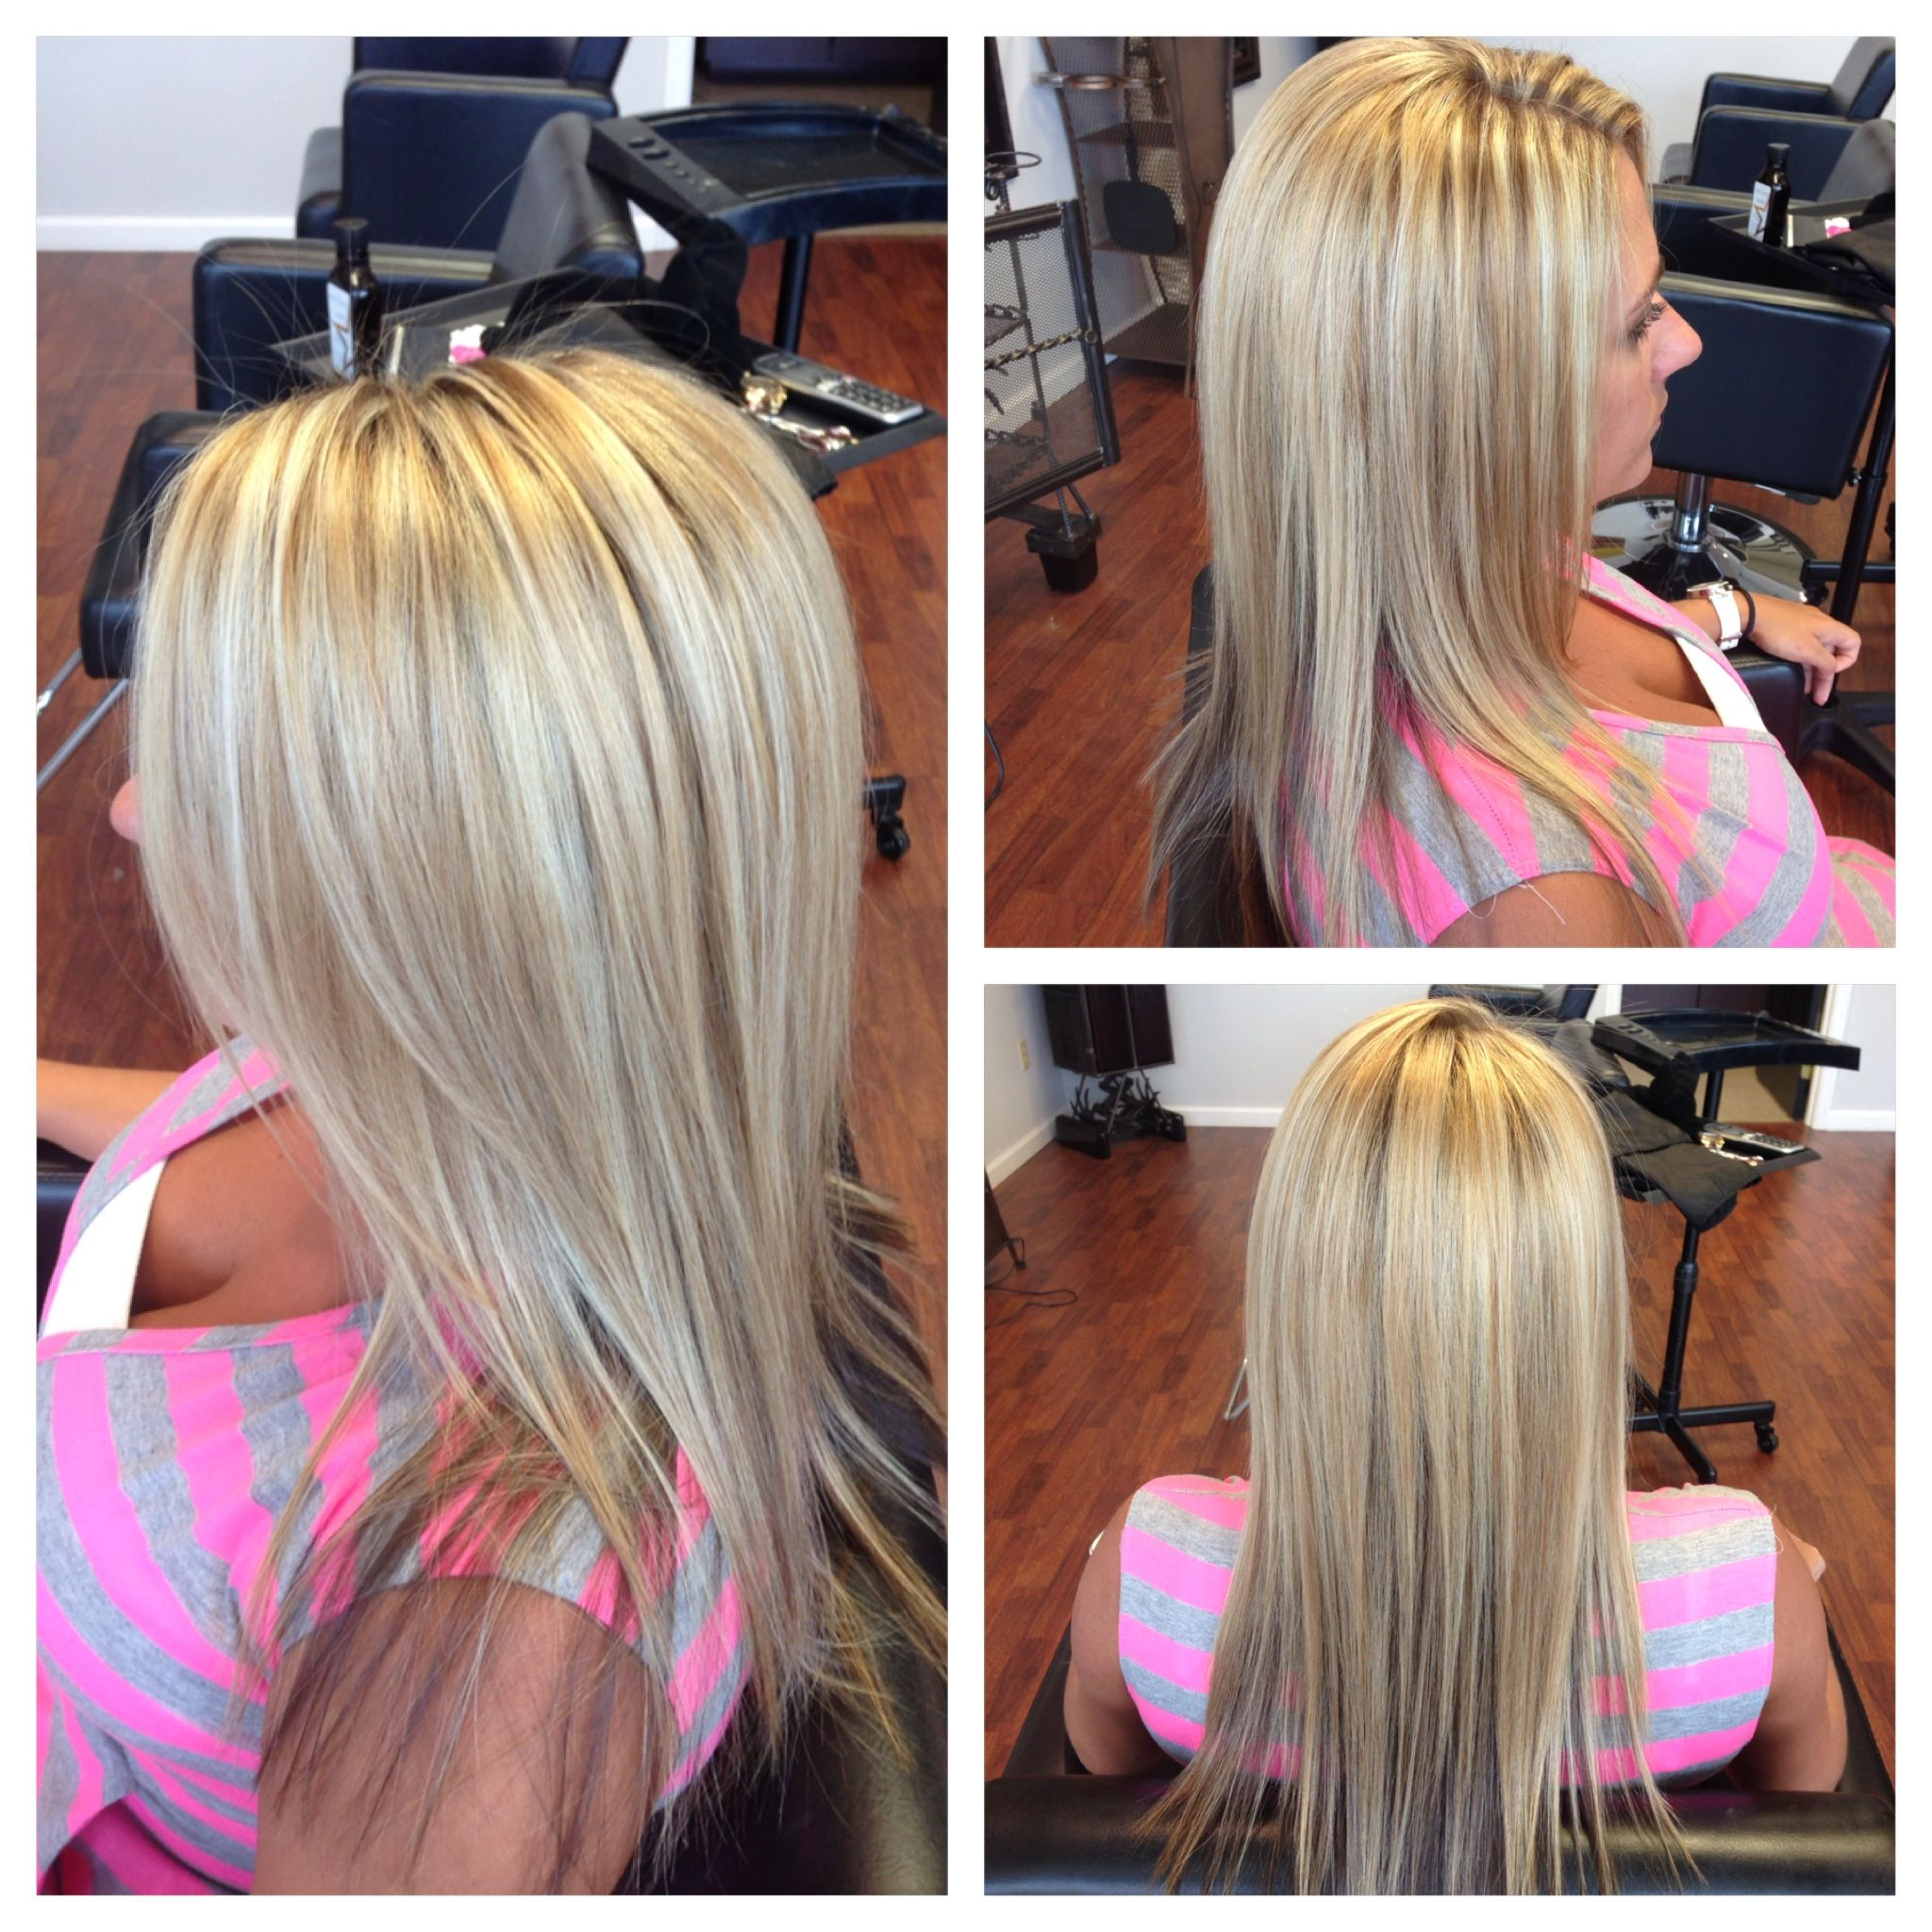 Blonde hair hilights overlay and trim